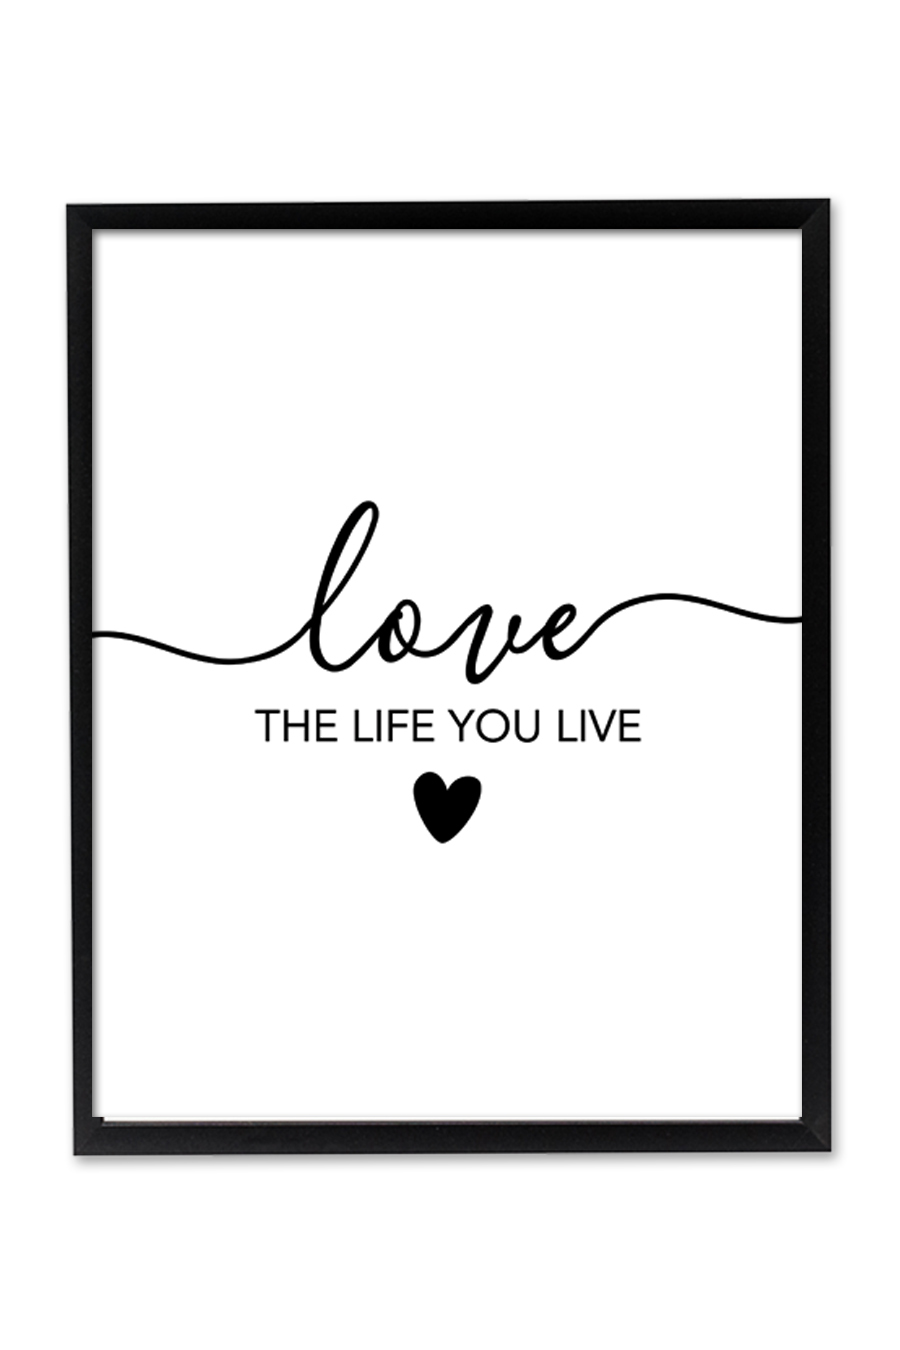 Love The Life You Live Printable Wall Art Chicfetti Want to learn to speak even more english the fast, fun and easy way? life you live printable wall art